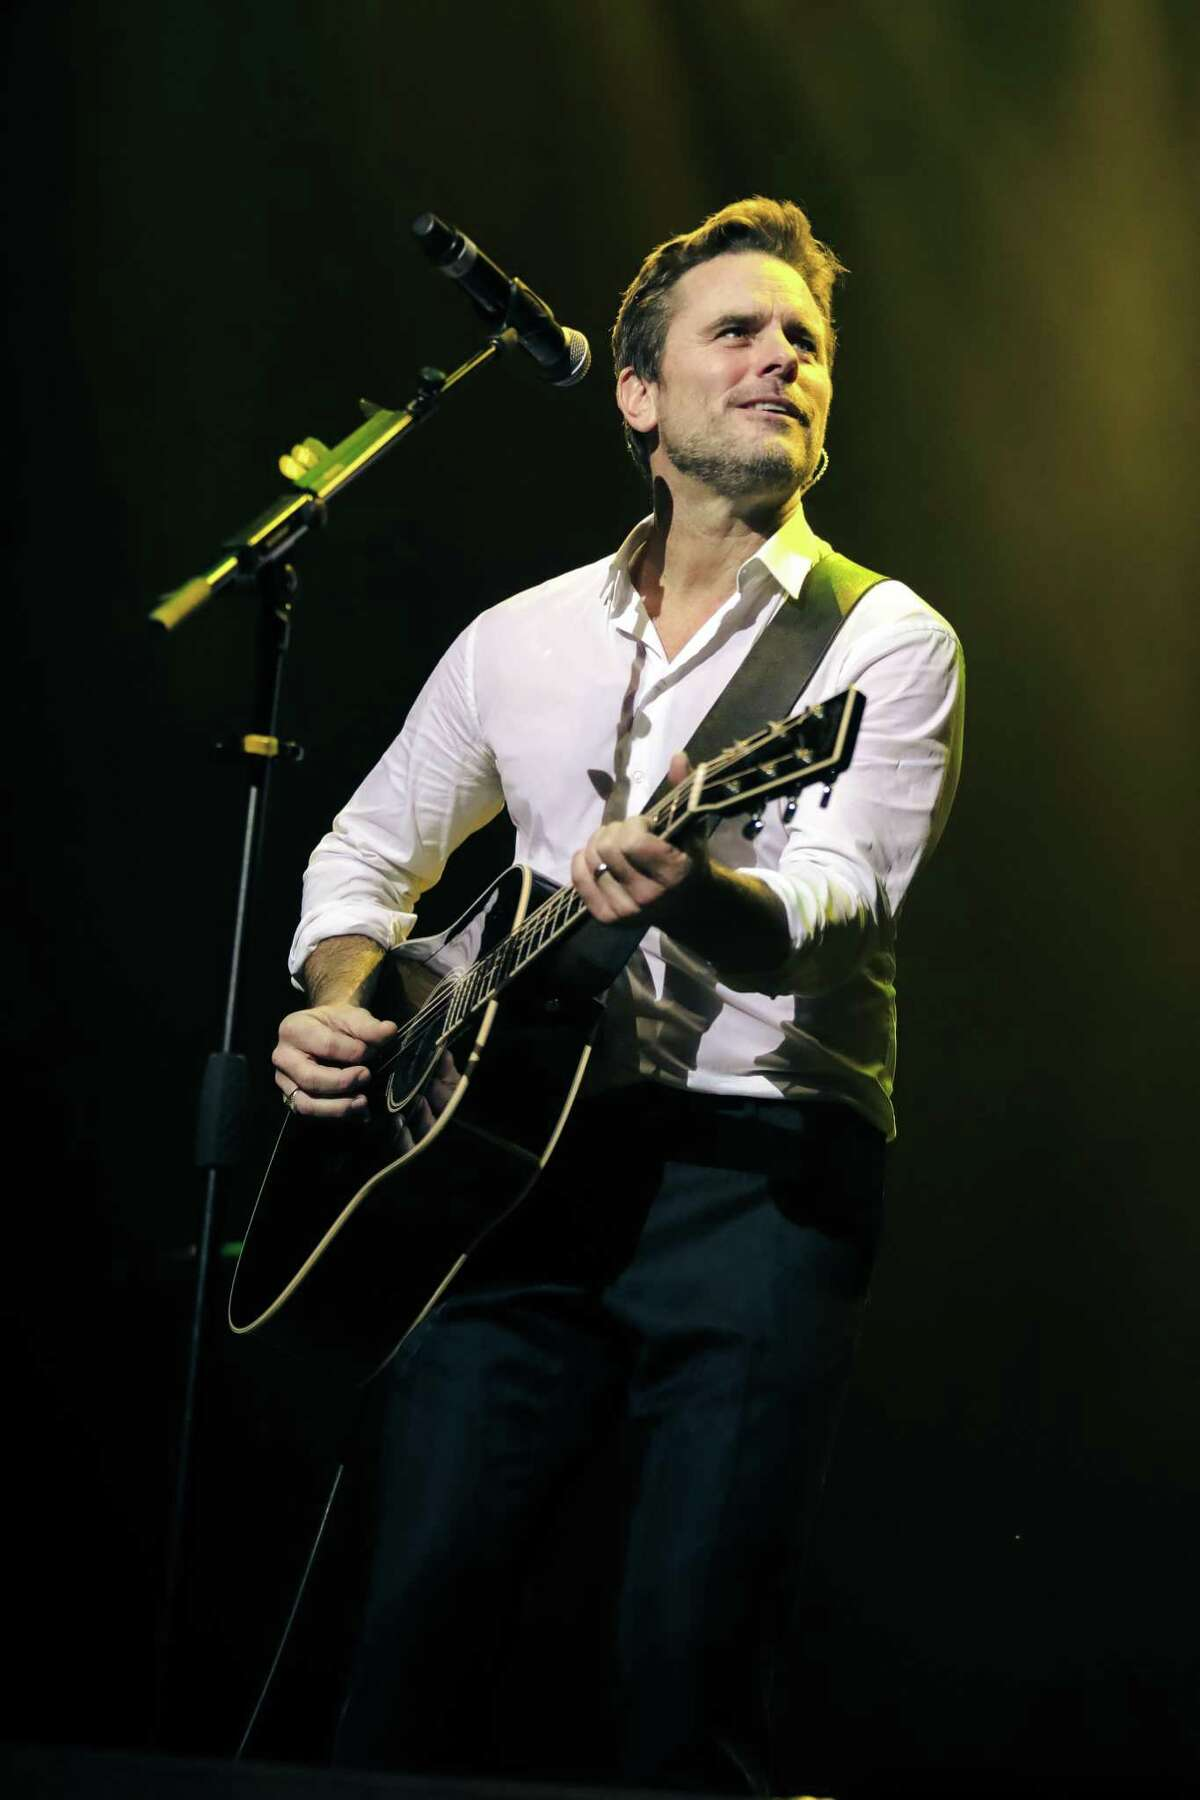 The Palace Theater is offering a wide variety of entertainment in the coming months. Singer Charles Esten is scheduled to perform at the theater March 28.